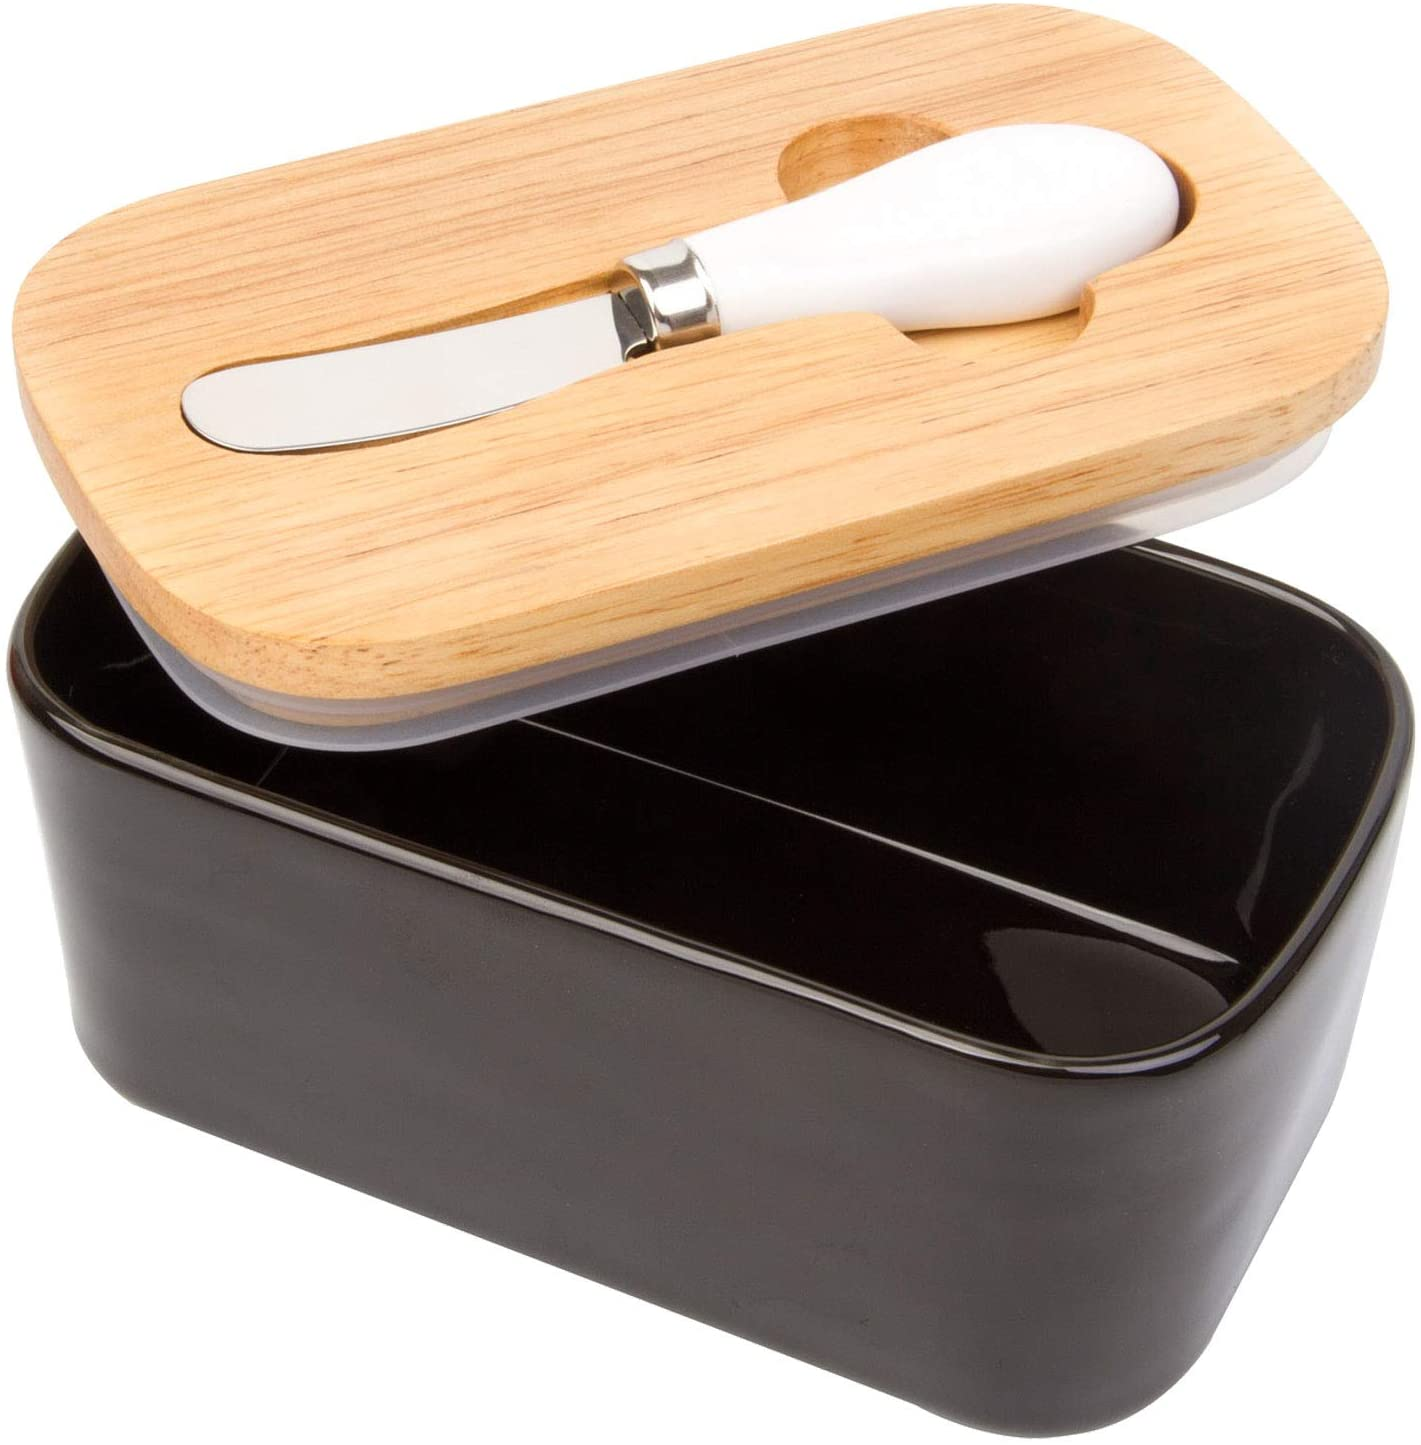 Arswin Butter Dish with Lid, LARGE 650ml Porcelain Keeper with Bamboo Cover & Stainless Steel Knife, Container Holds 2 Butter Sticks for Countertop Refrigerator, Easy Clean Butter Storage Dish (Black)